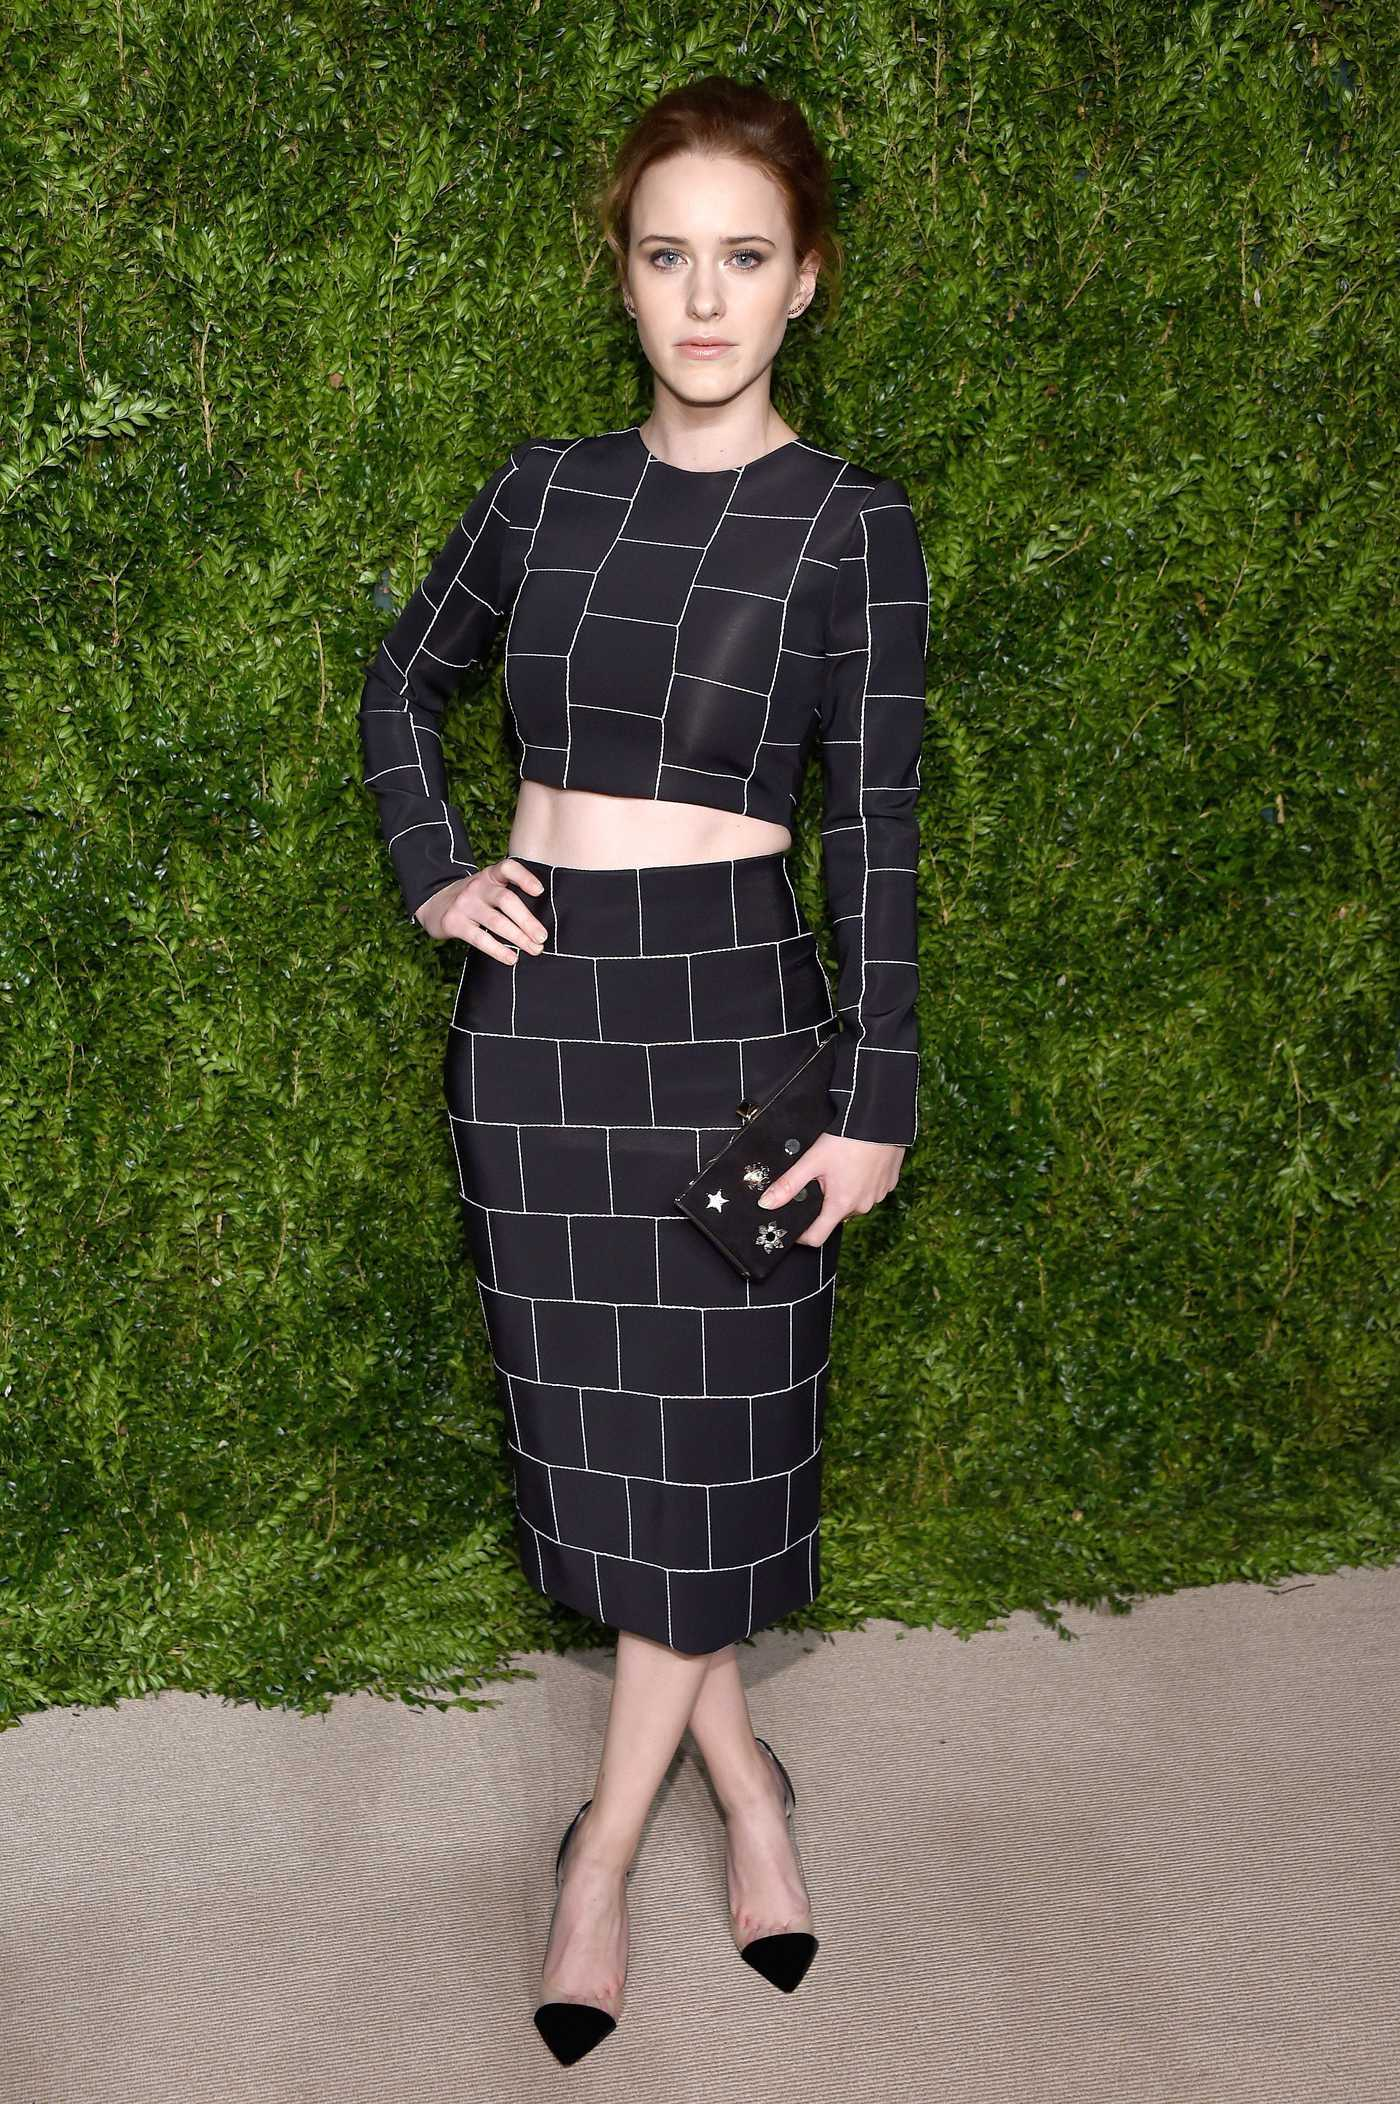 Rachel Brosnahan at the 13th Annual CFDA/Vogue Fashion Fund Awards in New York City 11/07/2016